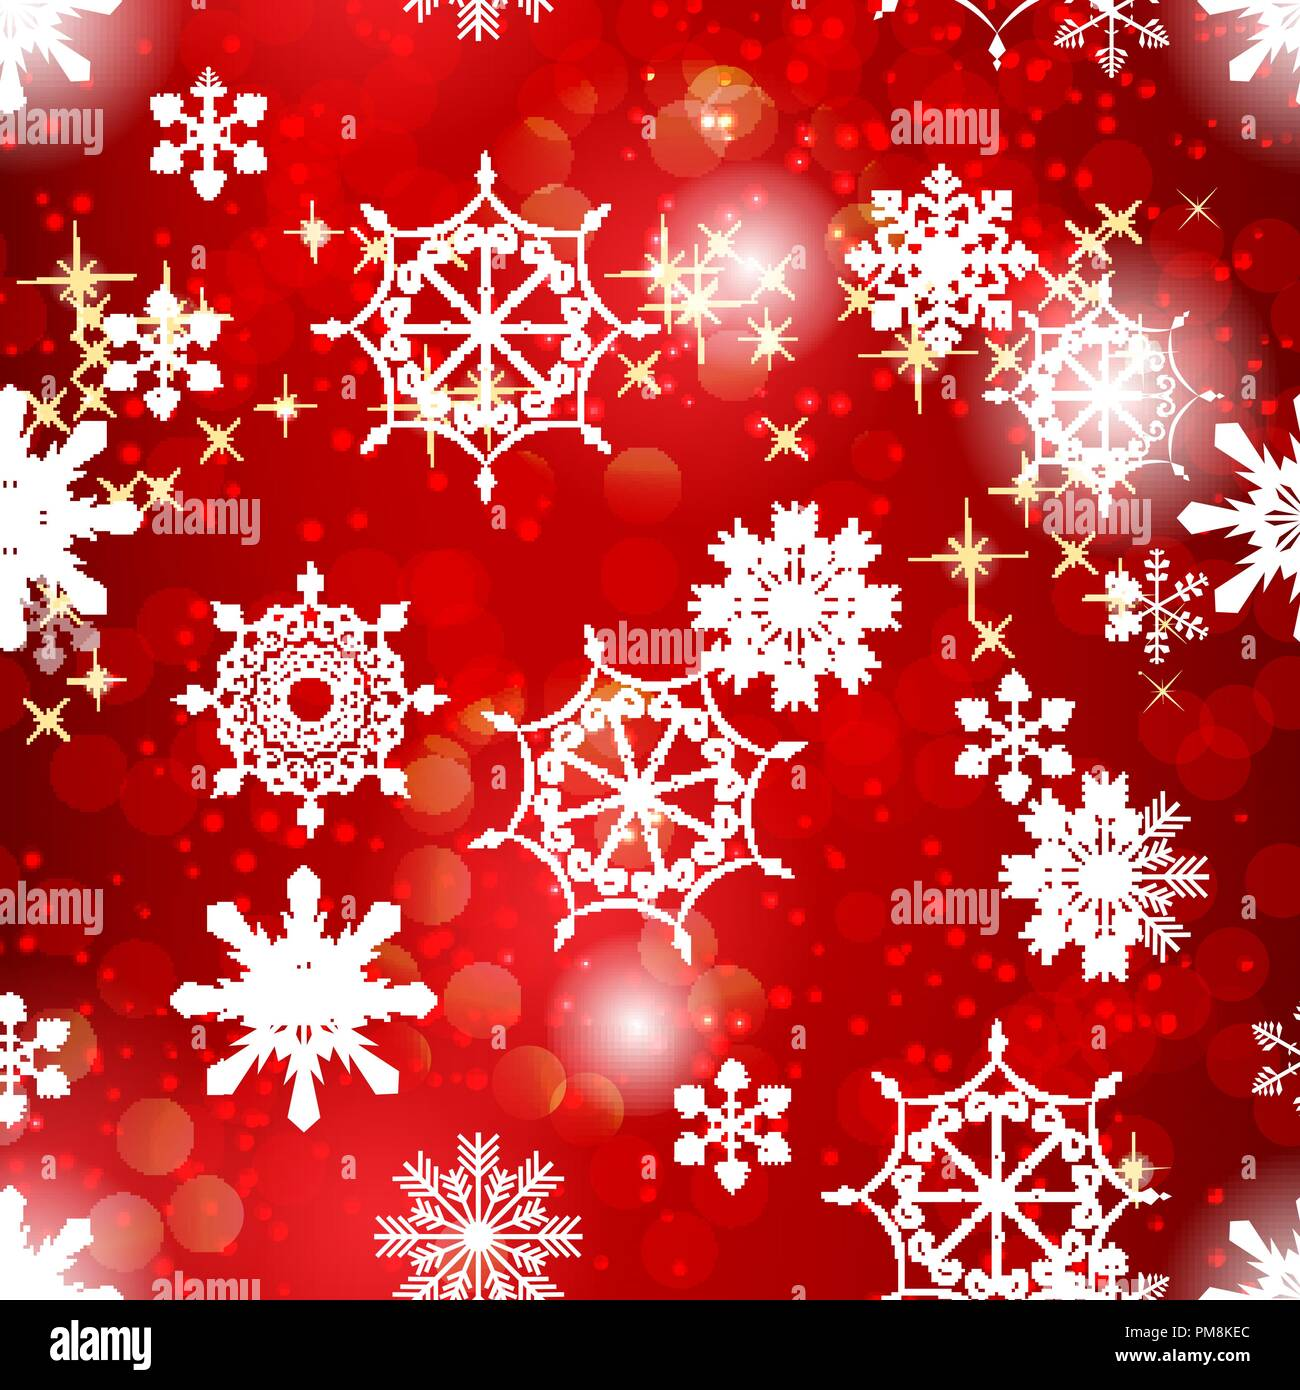 abstract beauty christmas and new year background with snow and snowflakes vector illustration